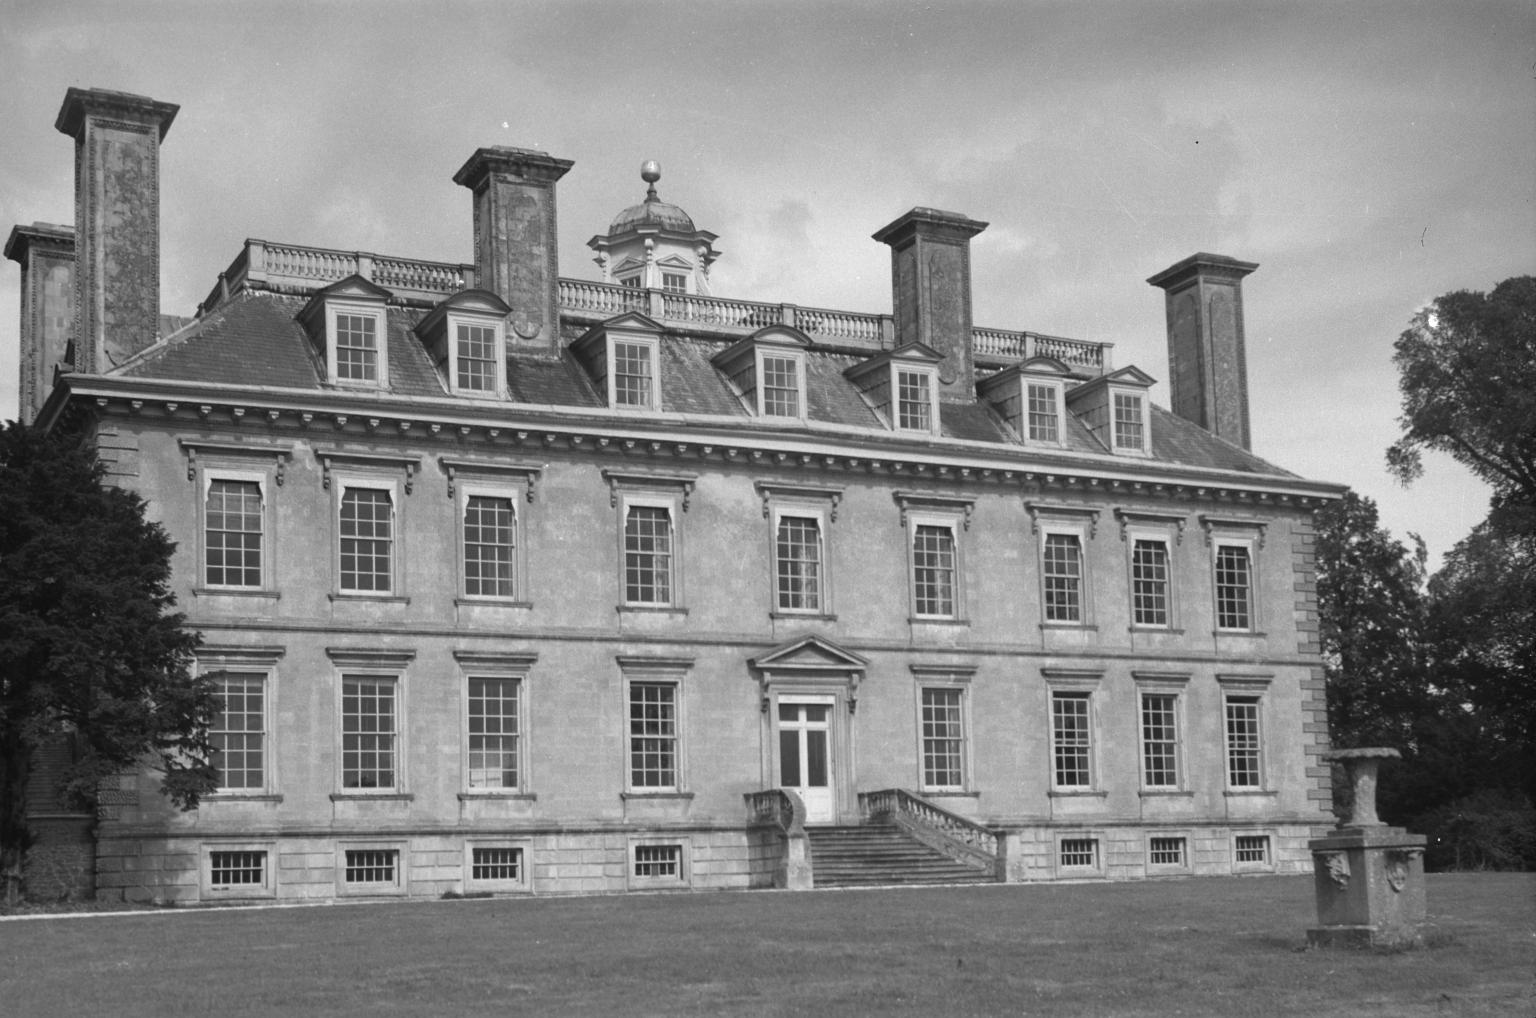 Photograph of Coleshill House, formerly in Berkshire [c 1930s-1980s] by John Piper 1903-1992